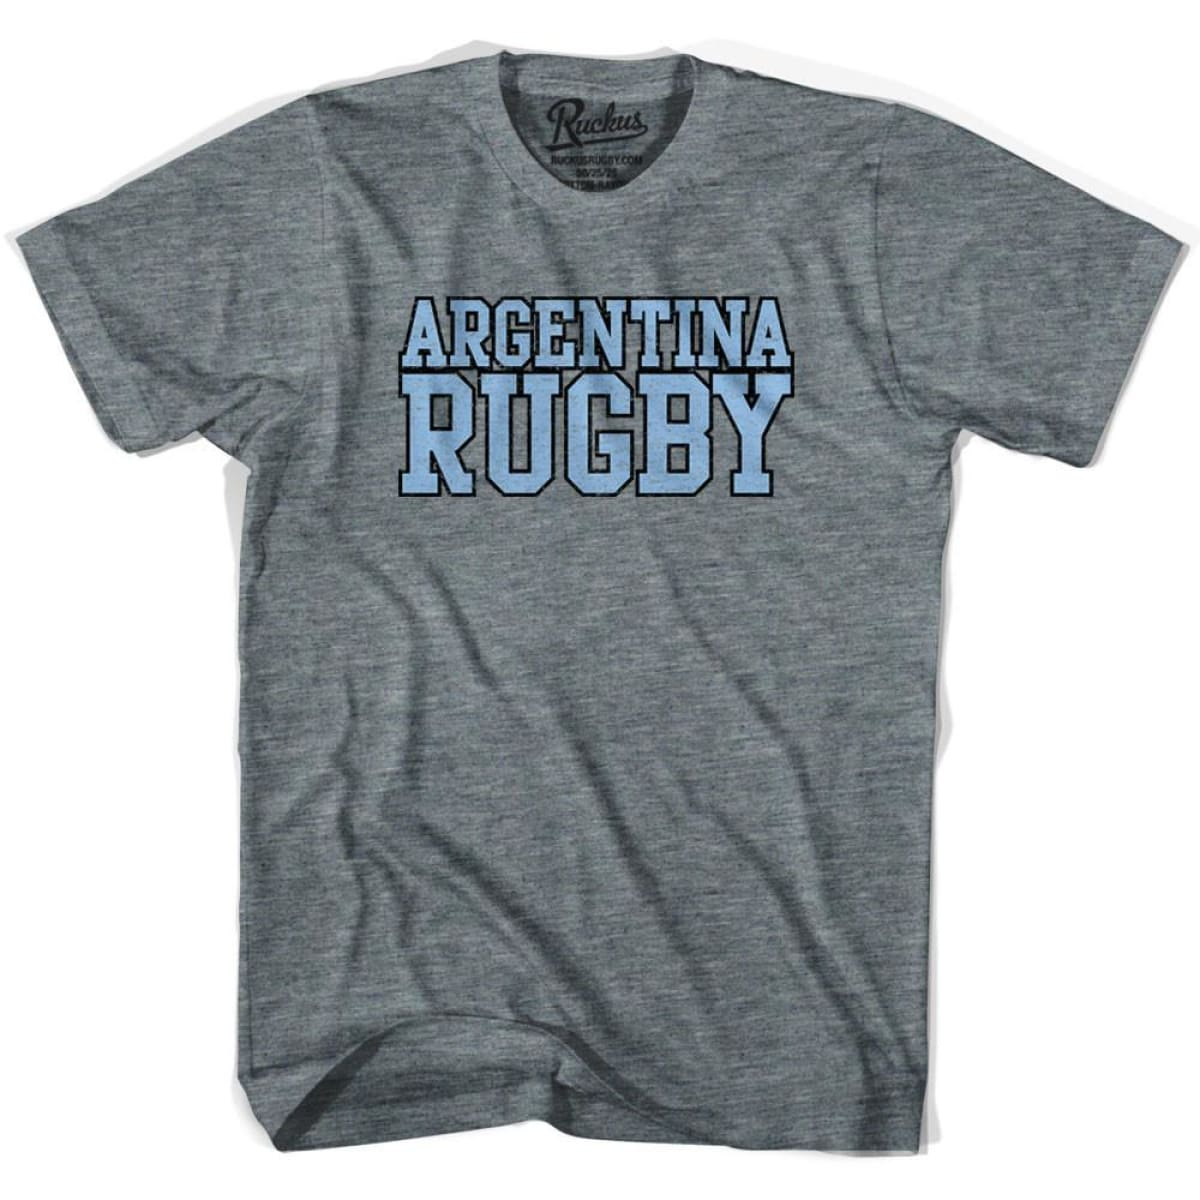 Argentina Rugby Nations T-shirt - Athletic Grey / Adult Small - Rugby T-shirt